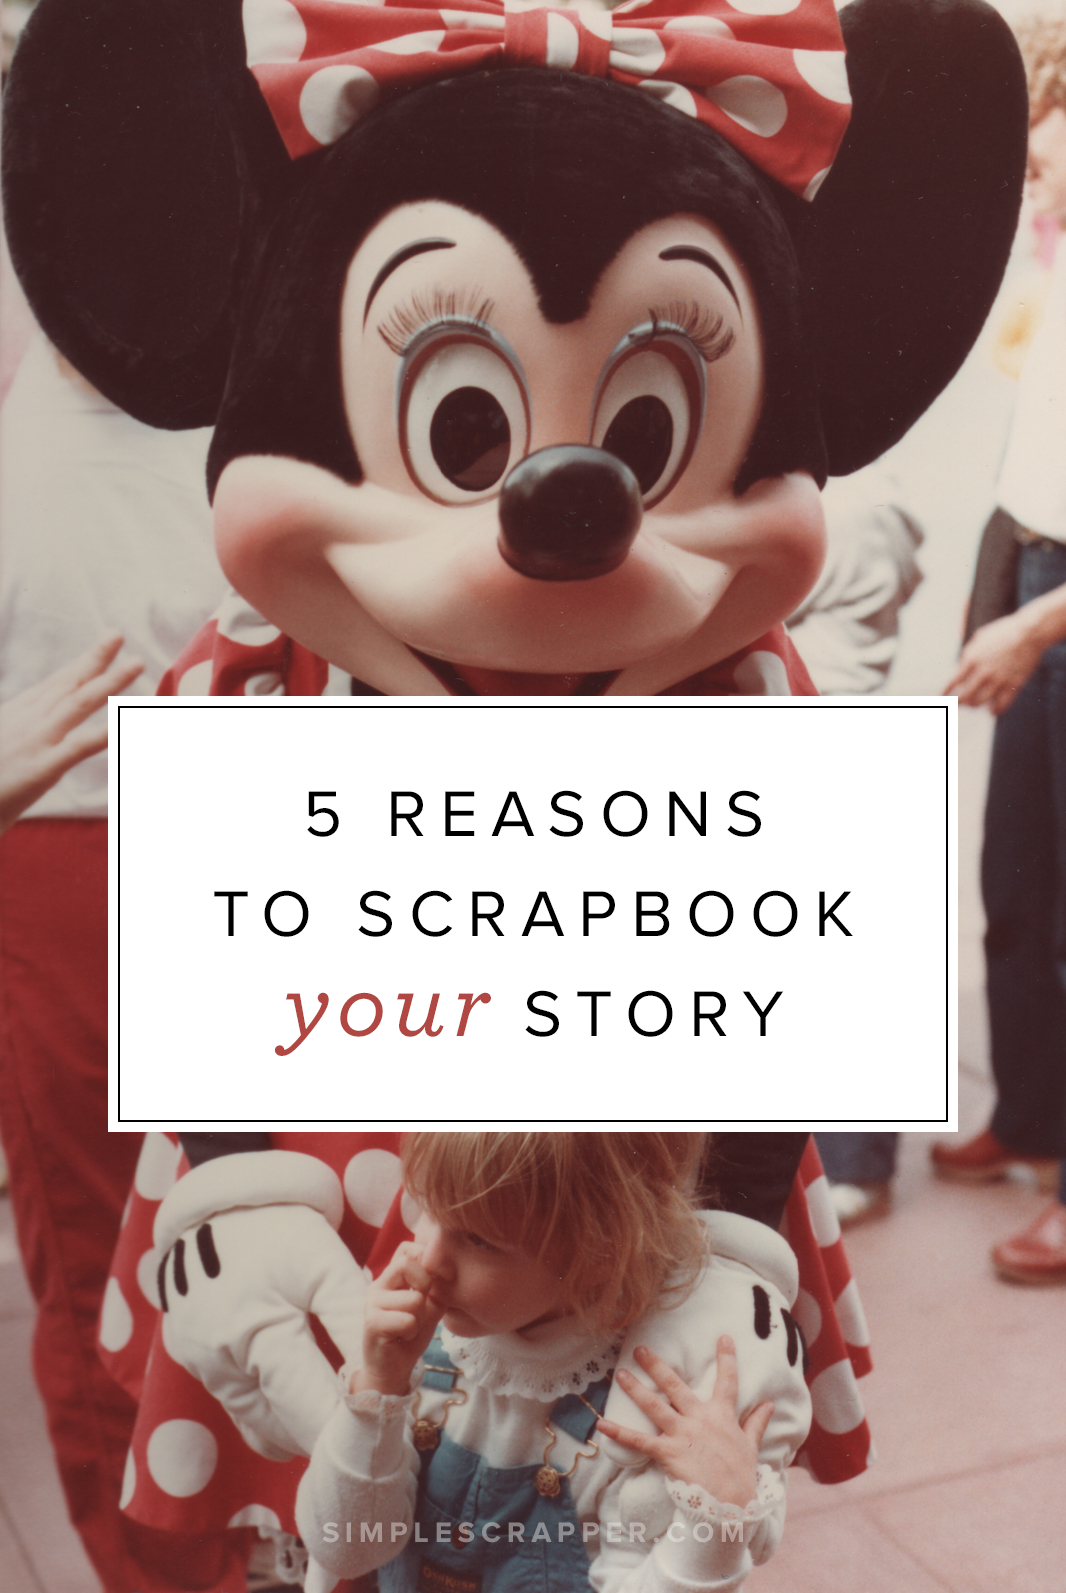 Will Anyone Really Care About Your Story?